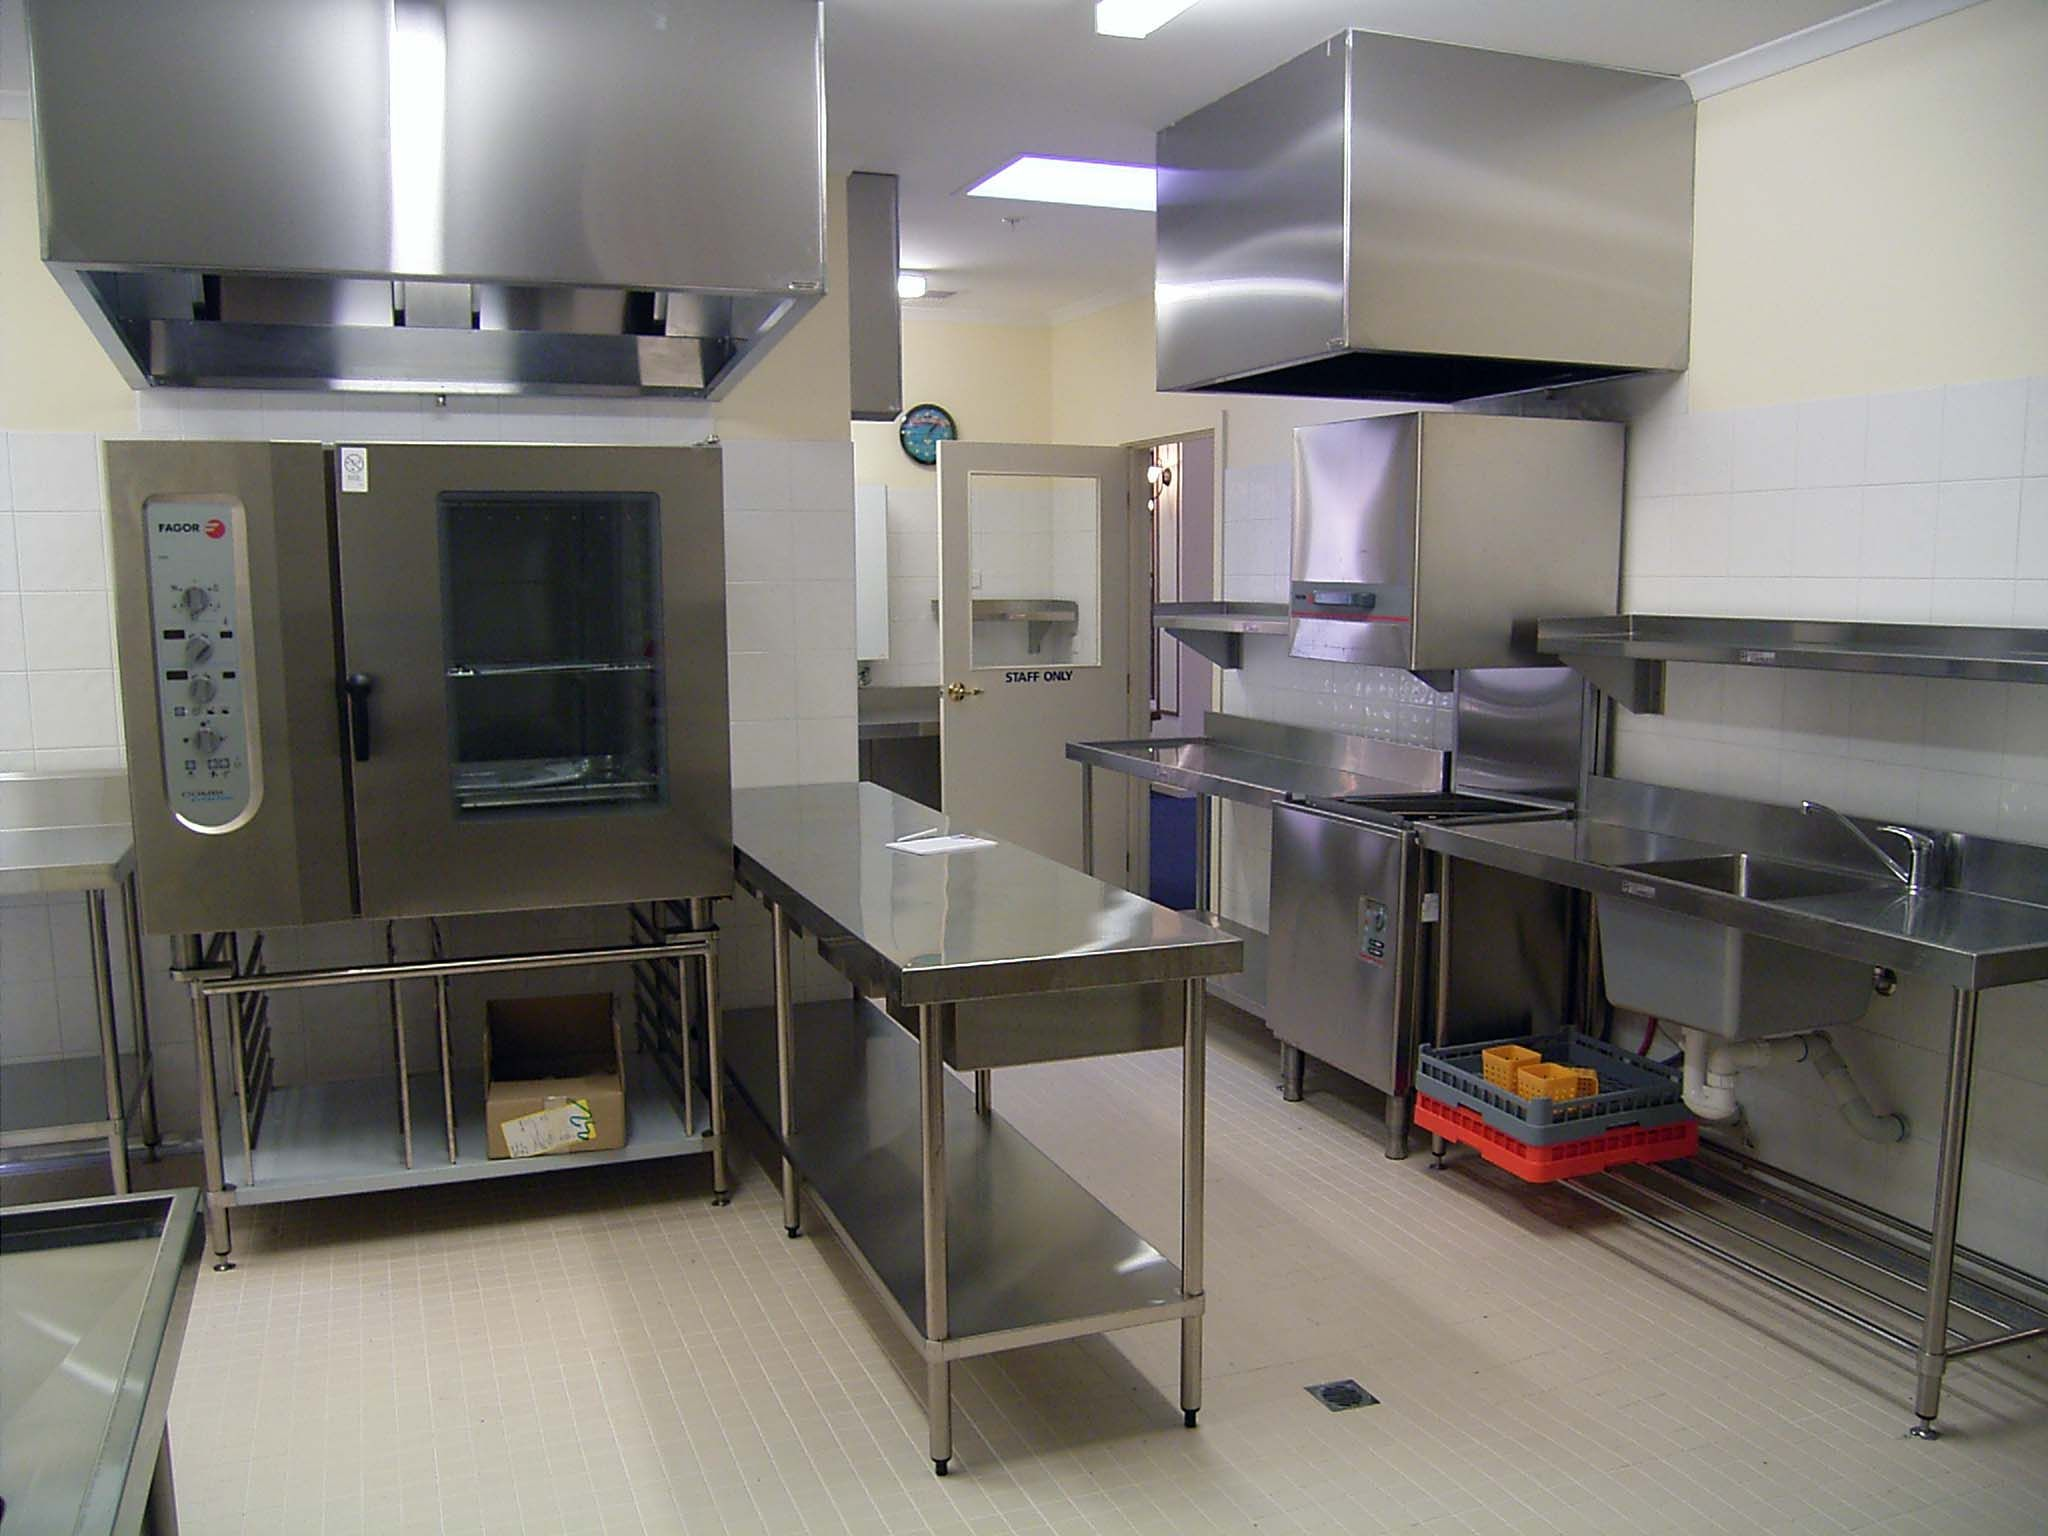 About mercial Kitchen Design Source Google What began